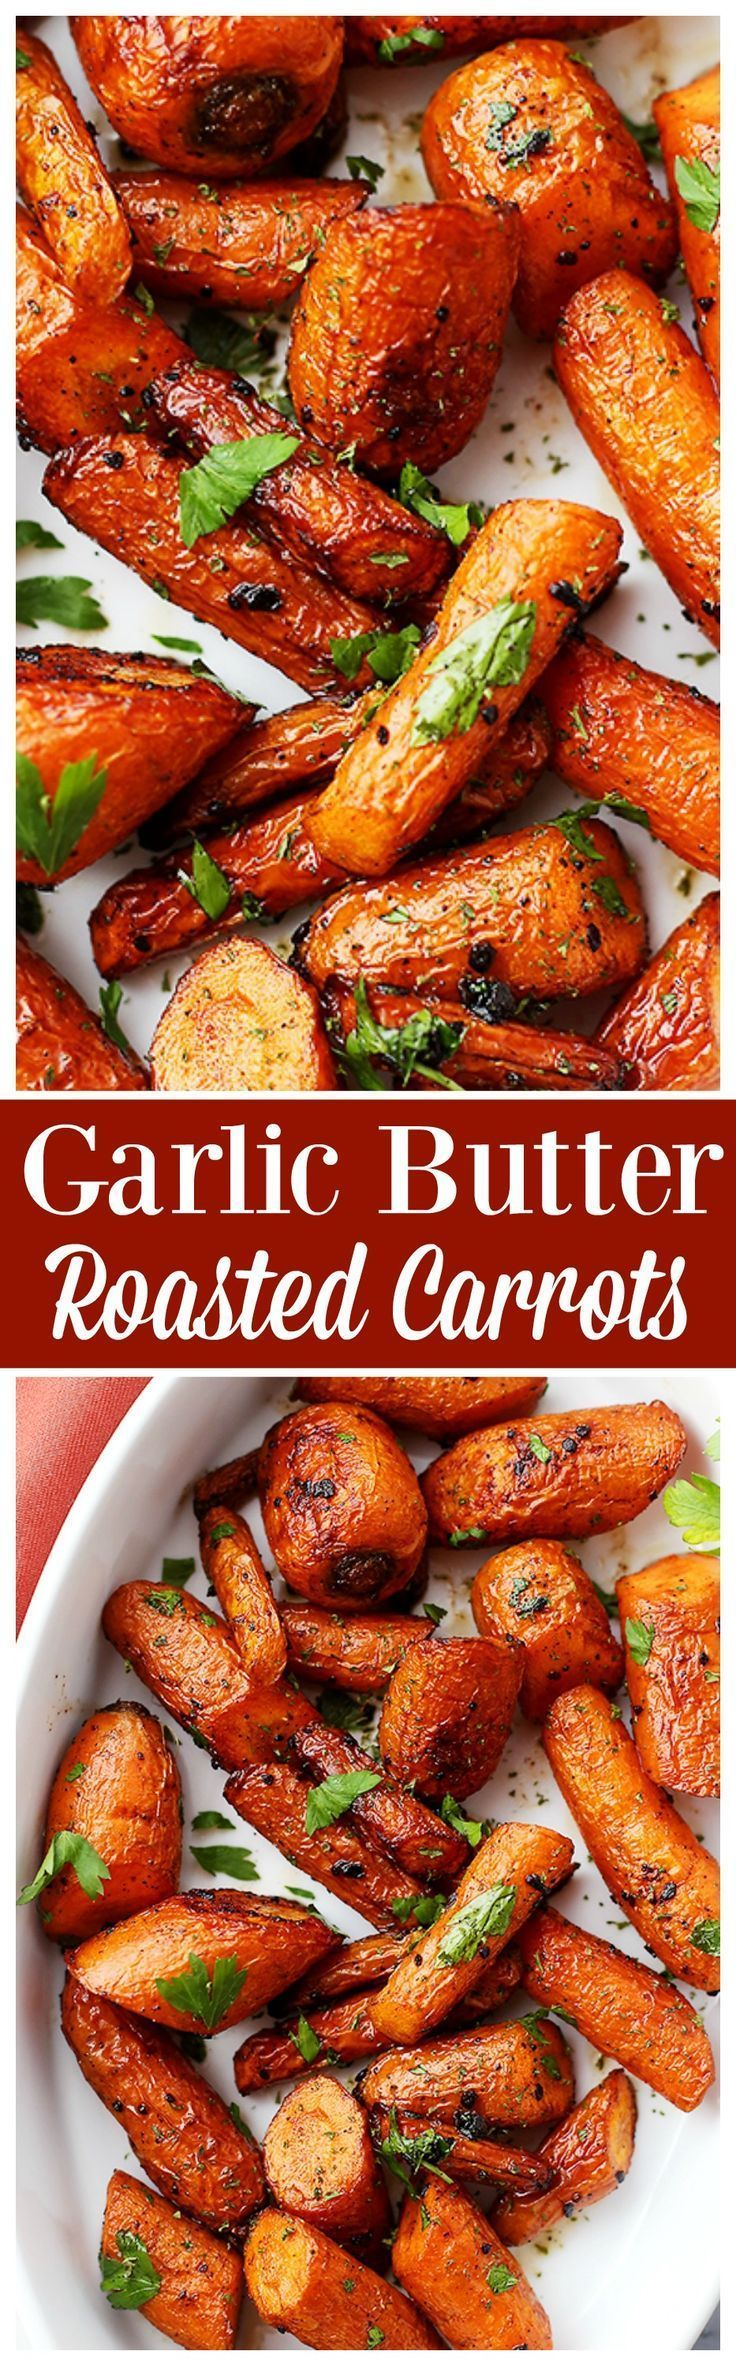 garlic butter roasted carrots. garlic butter. garlic. butter. roasted. veggie. starch. carrots.